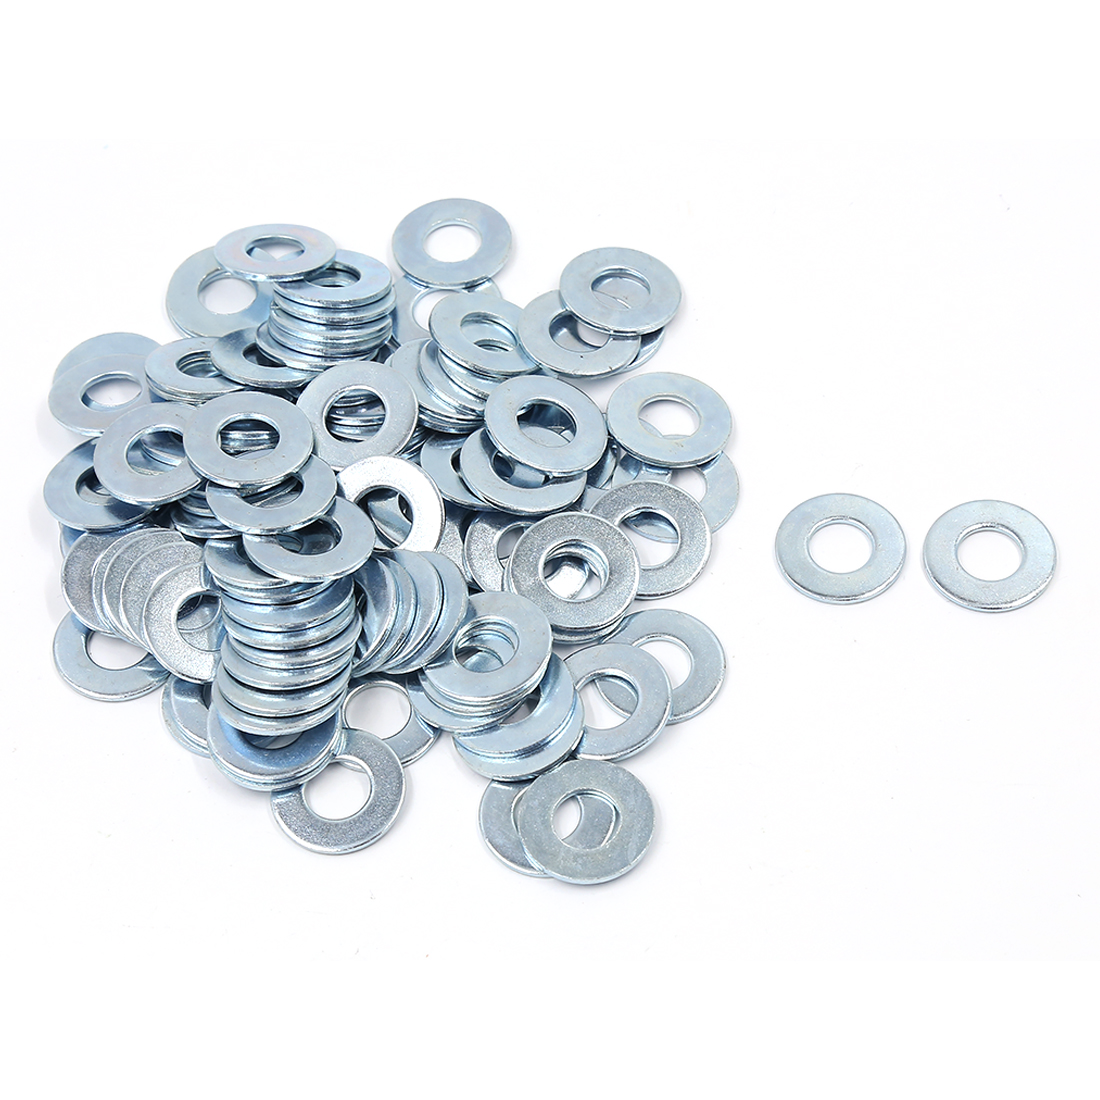 100 Pcs M12x26mmx1.7mm Stainless Steel Metric Round Flat Washer for Bolt Screw